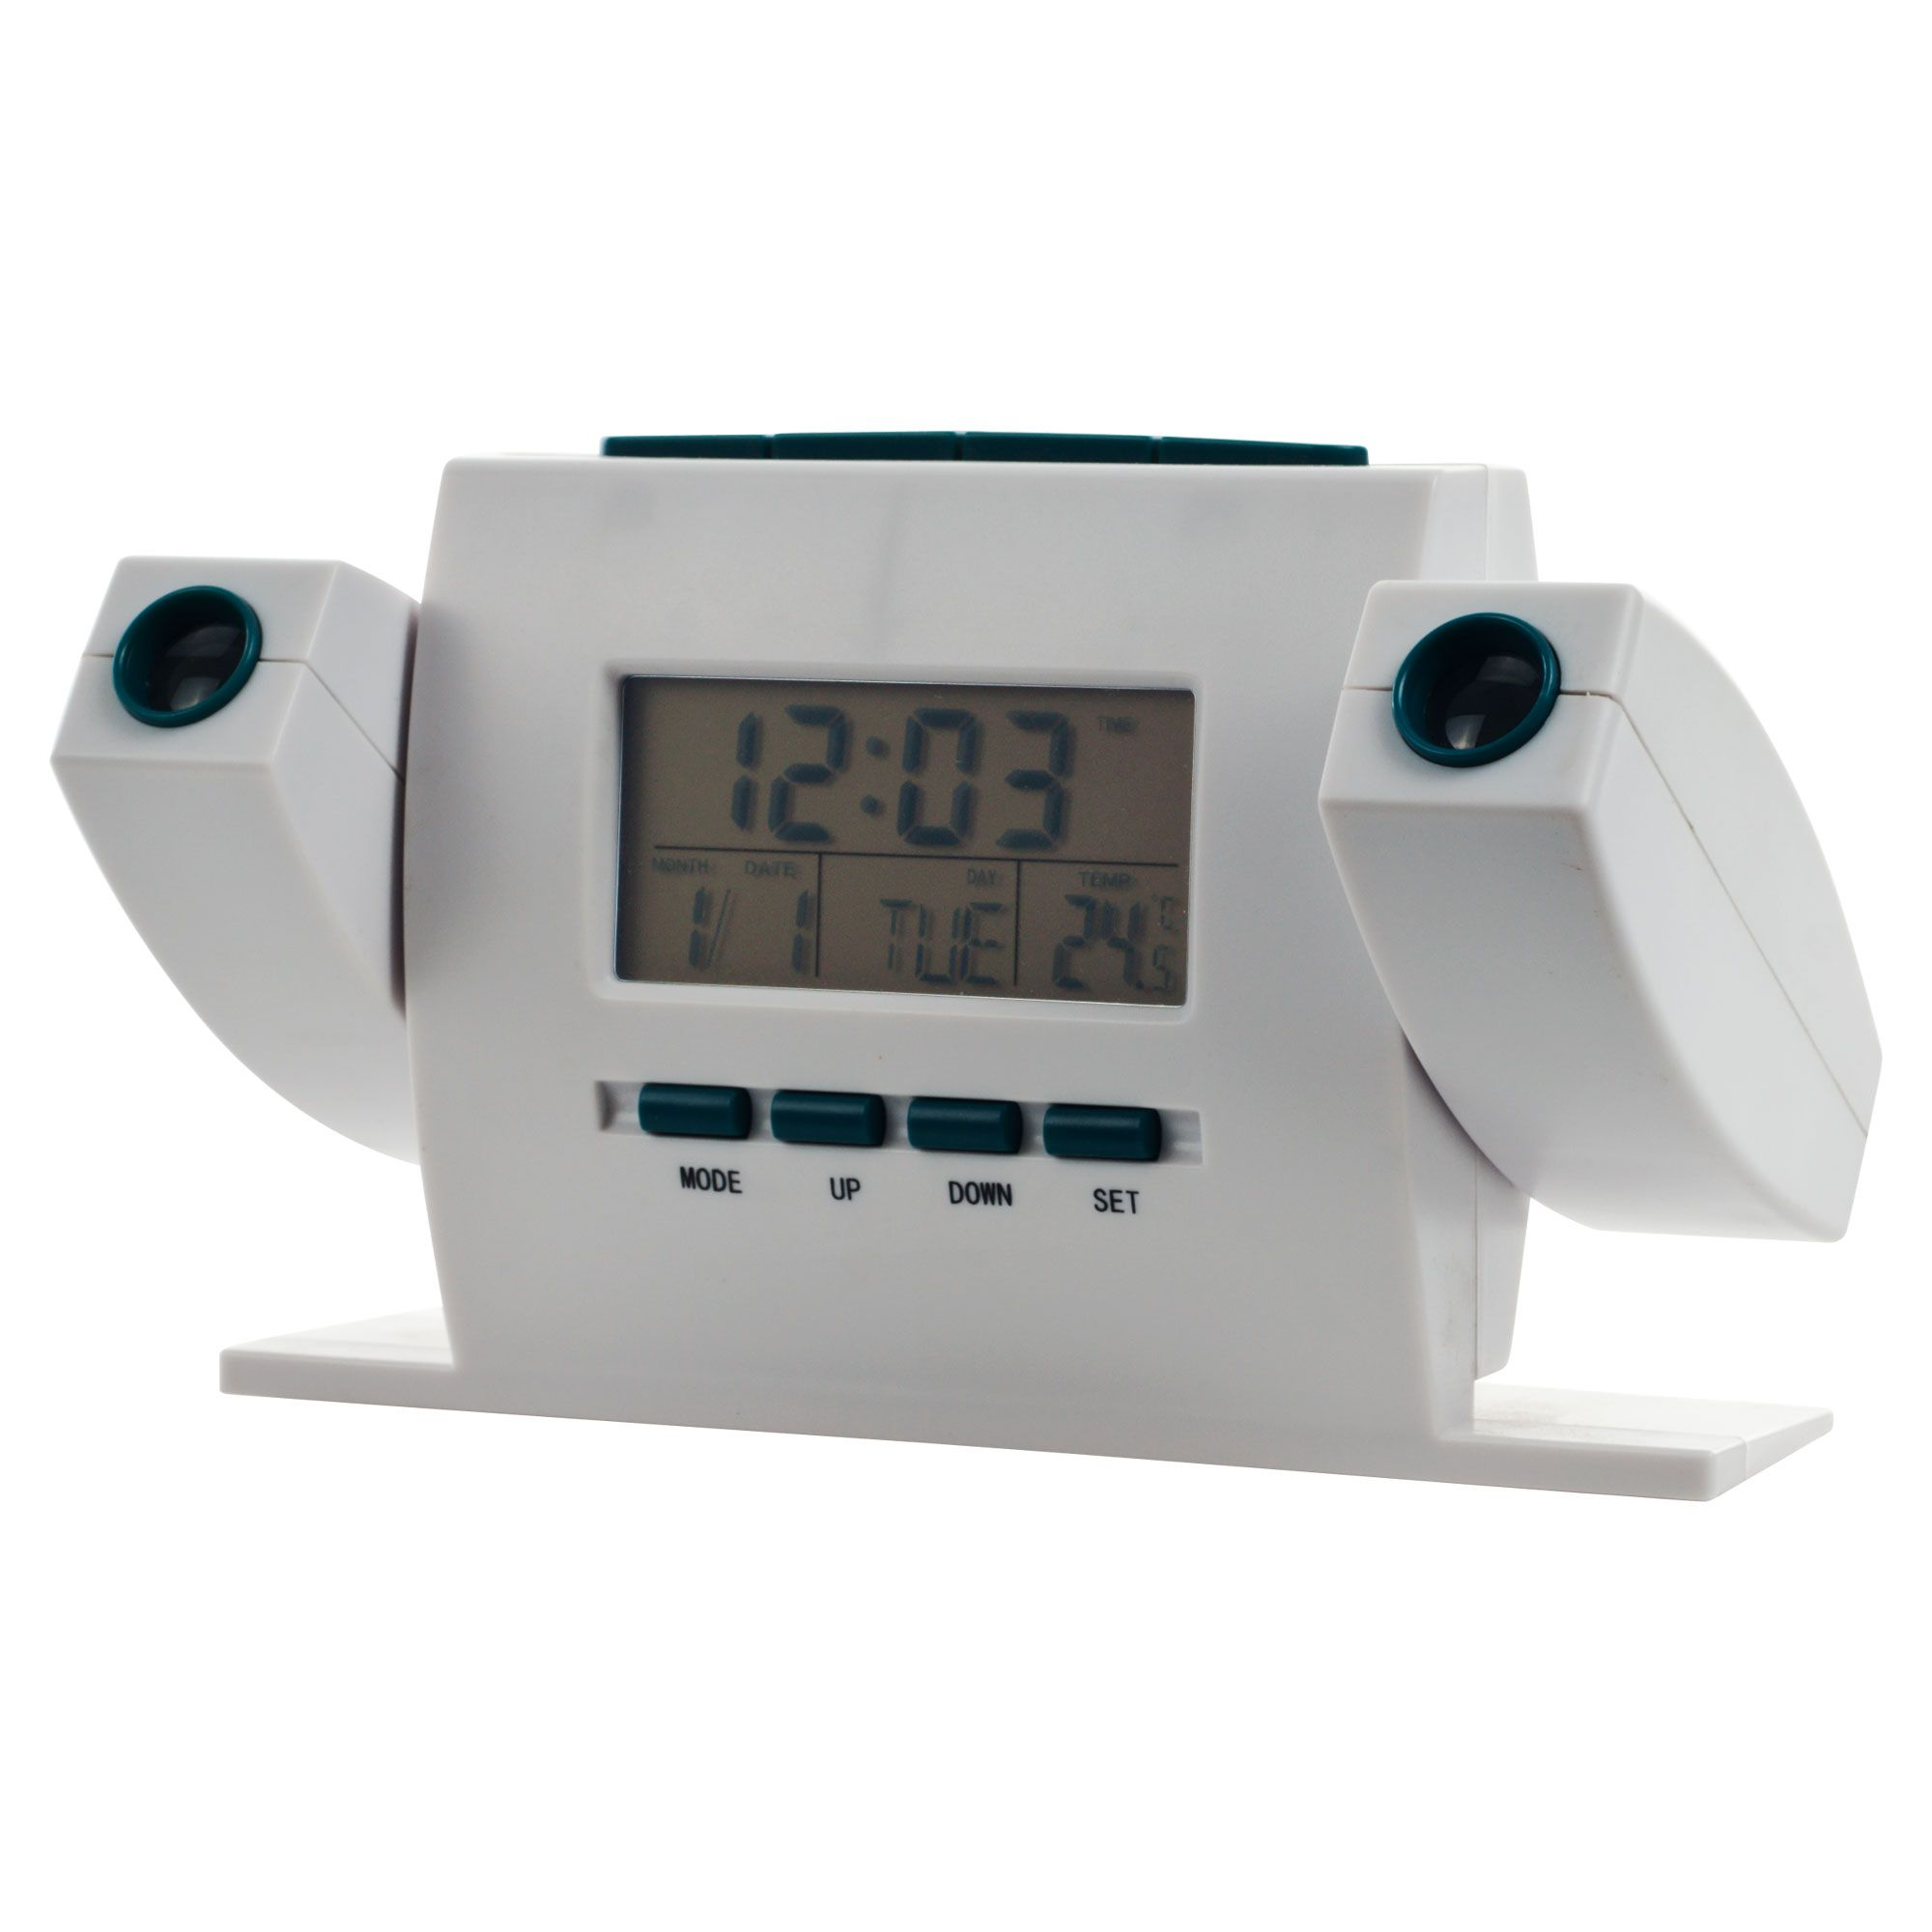 Trademark Dual Projection Alarm Clock with FM Radio